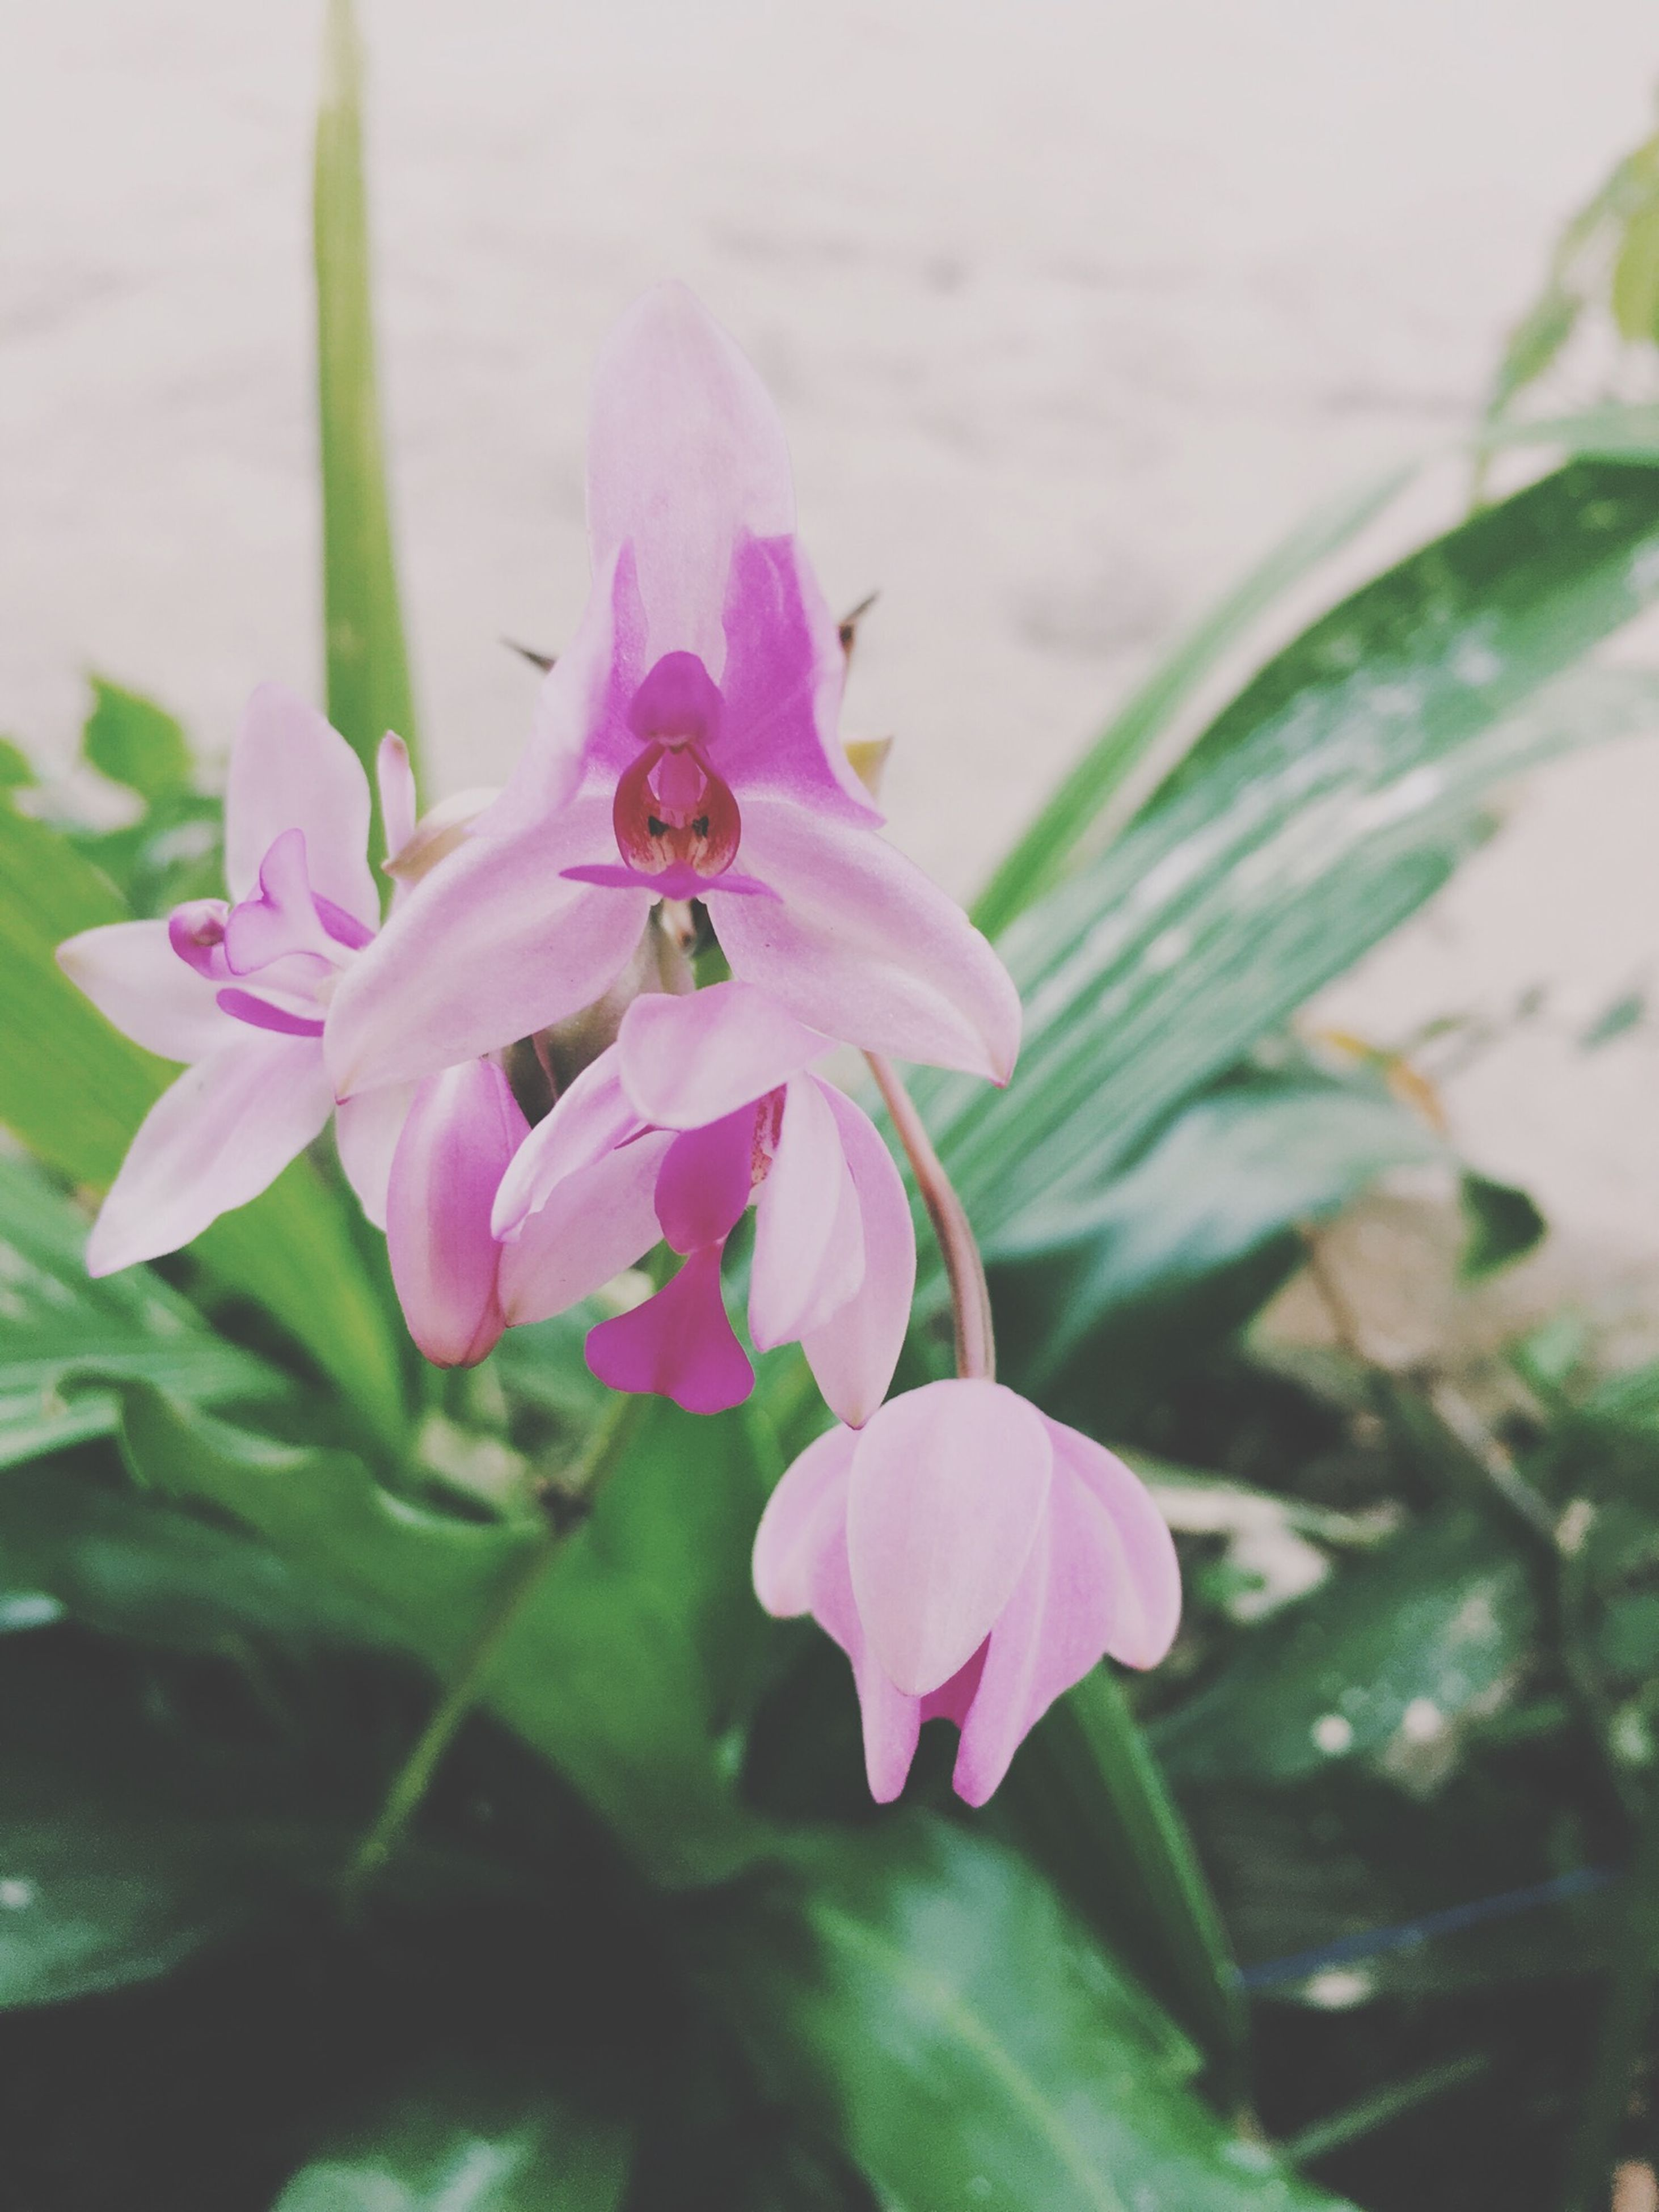 flower, petal, freshness, fragility, flower head, growth, beauty in nature, pink color, close-up, blooming, nature, focus on foreground, plant, leaf, stamen, pollen, in bloom, single flower, stem, blossom